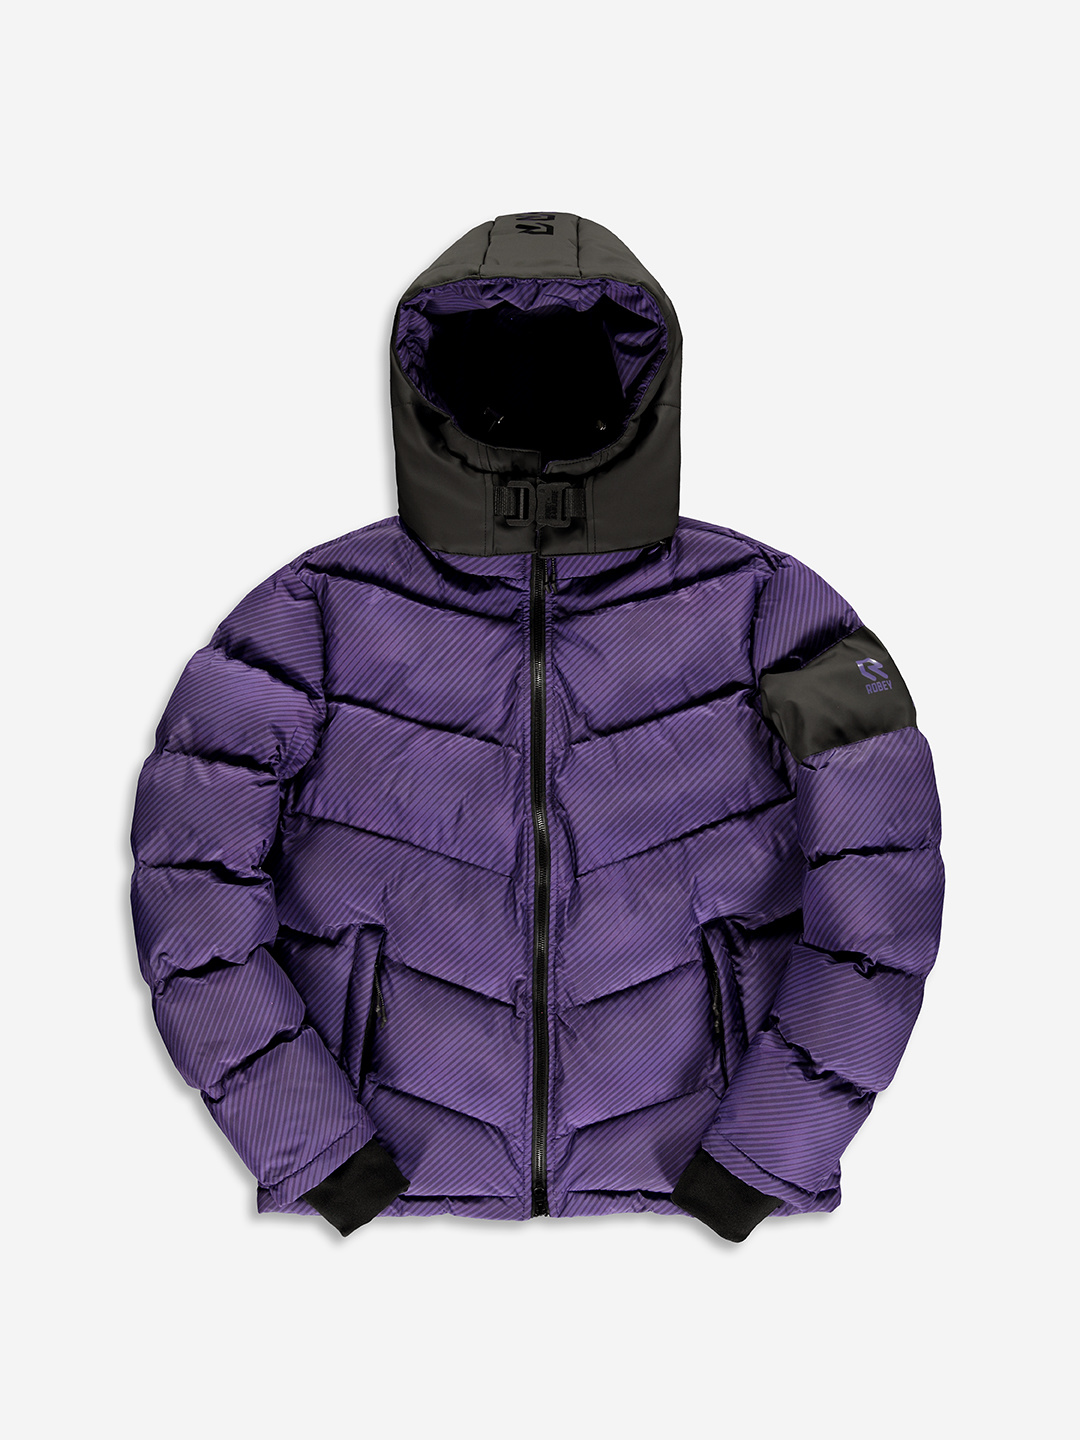 BANLIEUE X ROBEY PUFFER JACKET PURPLE